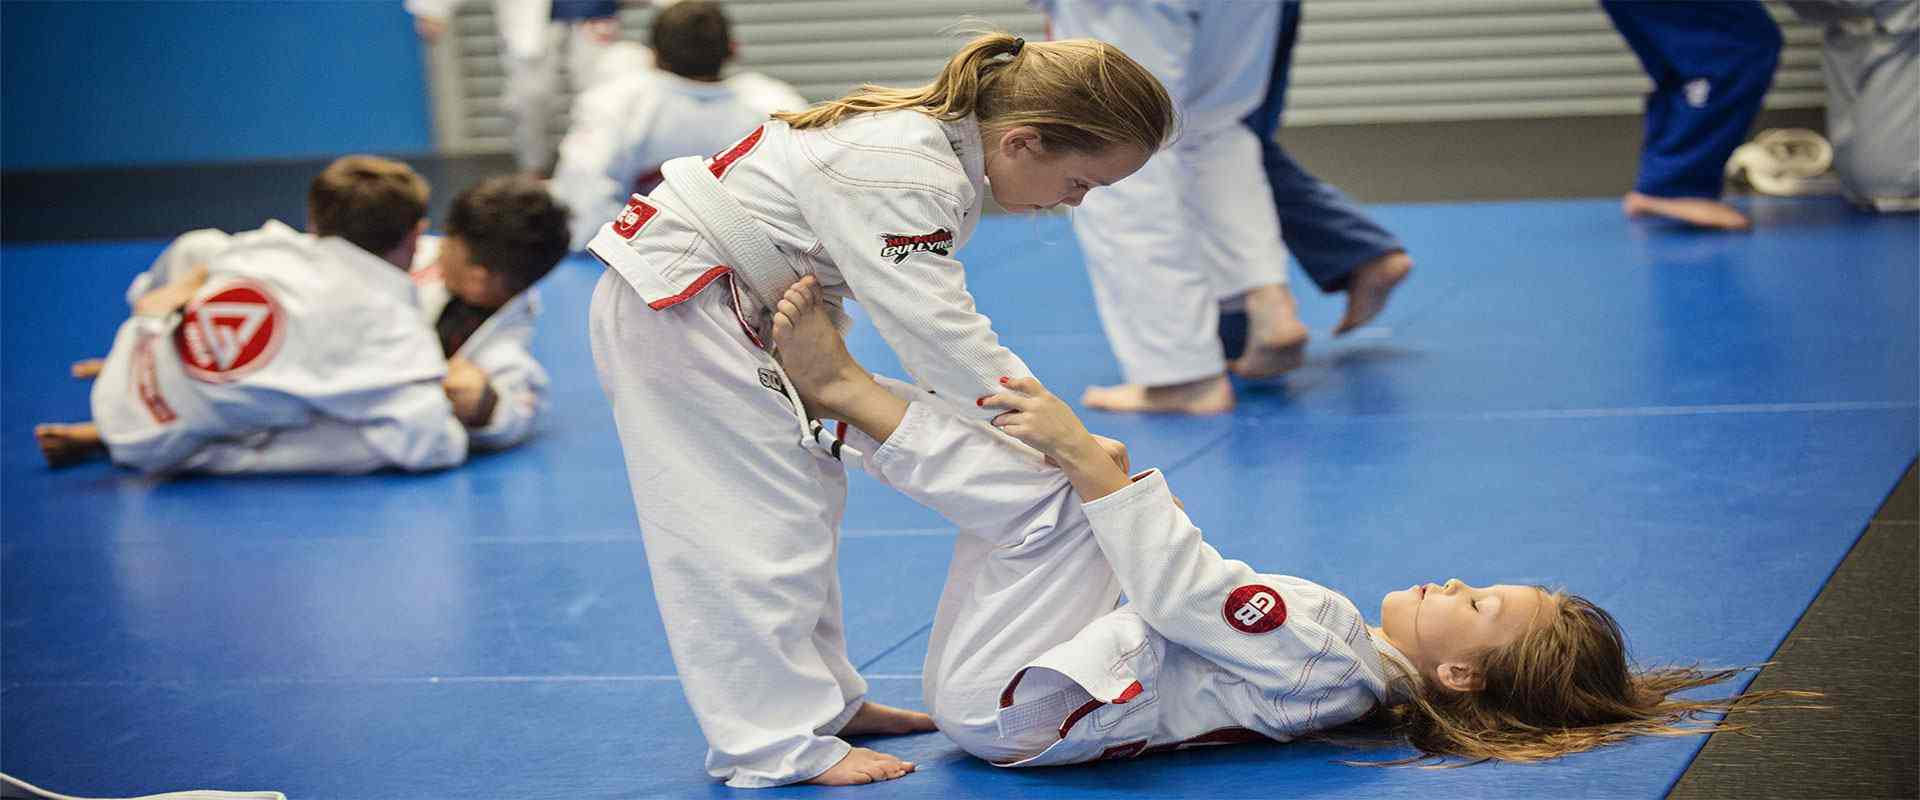 Graciebarra-slider